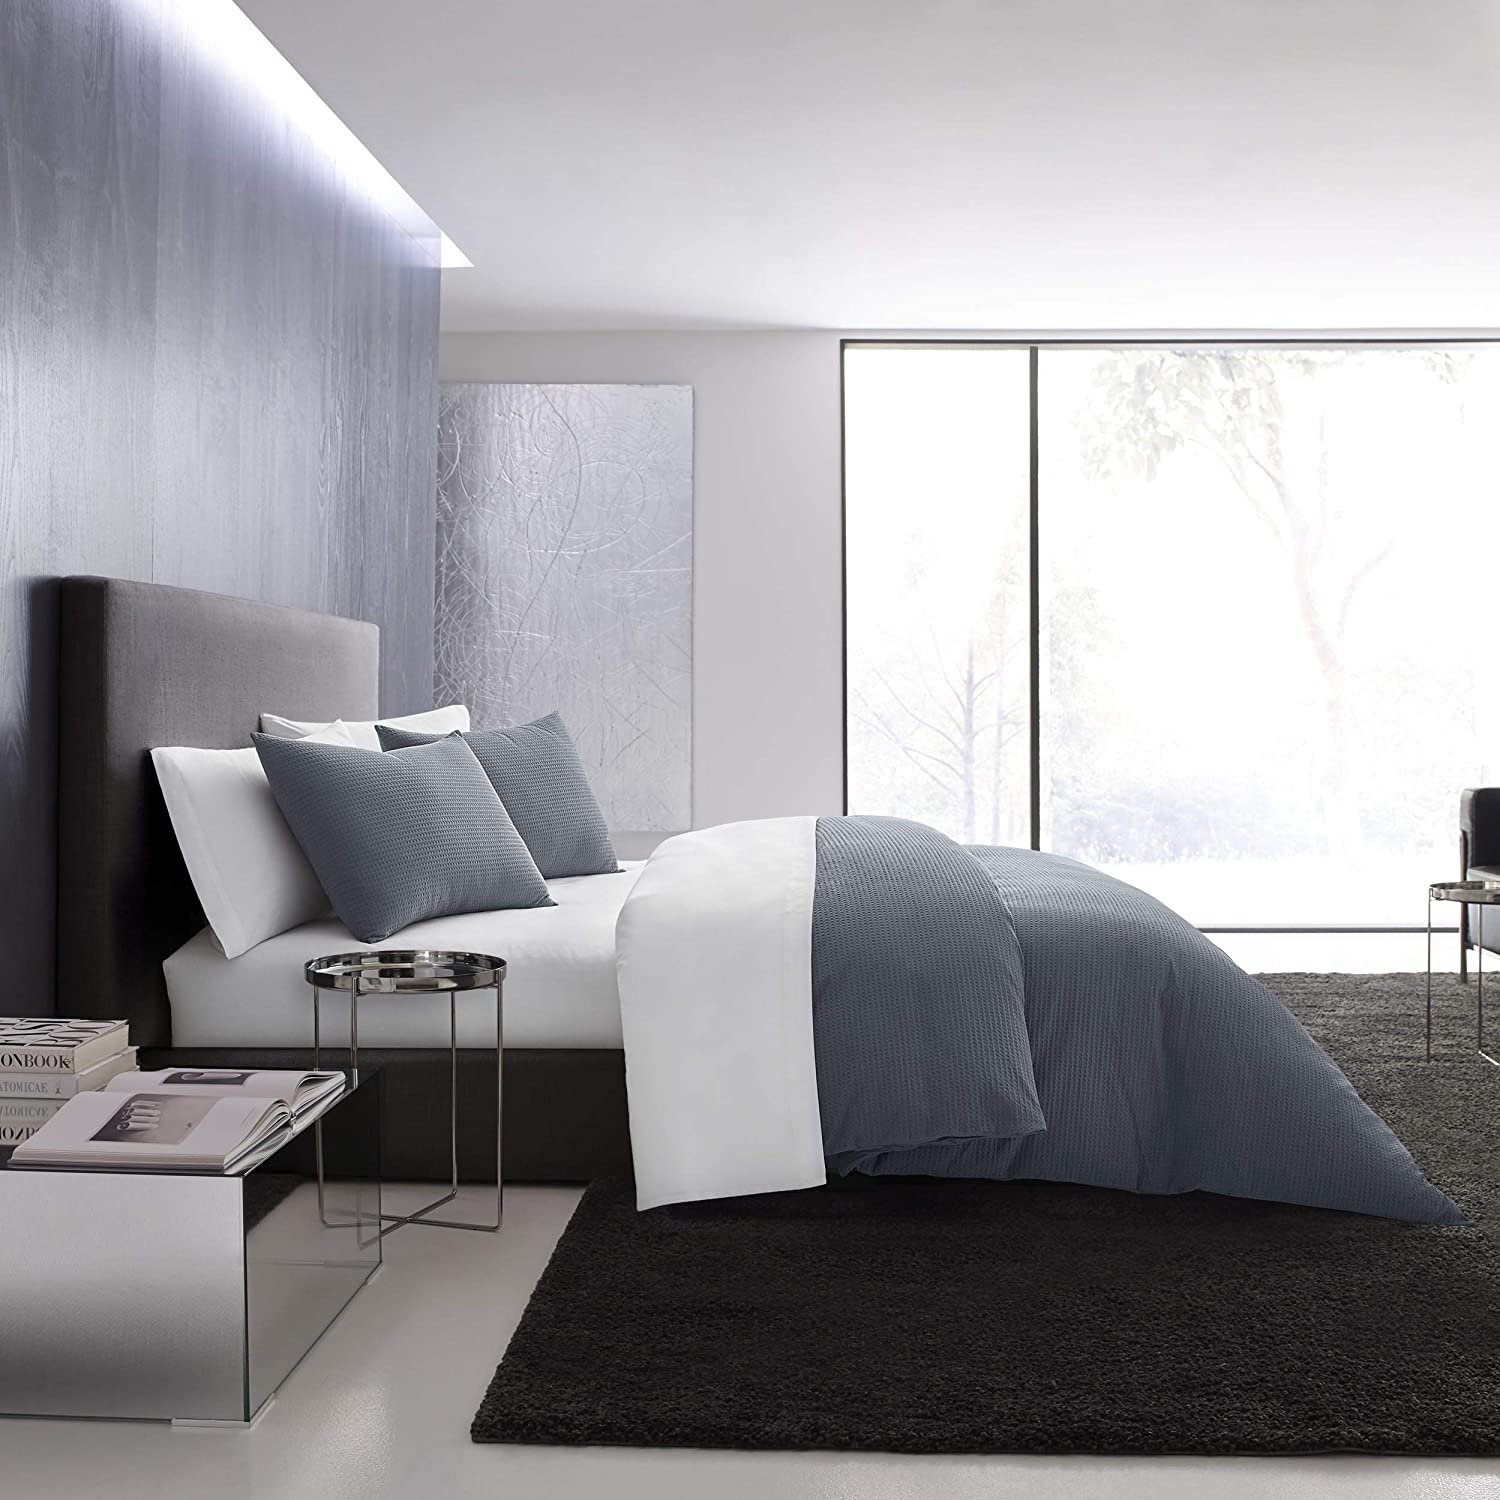 Vera Wang | Waffle Pique Collection | 100% Cotton Super Soft and Cozy Duvet Cover, Comfortable 3-Piece Bedding Set, Simple and Modern Style for Bedroom Décor, Queen, Blue